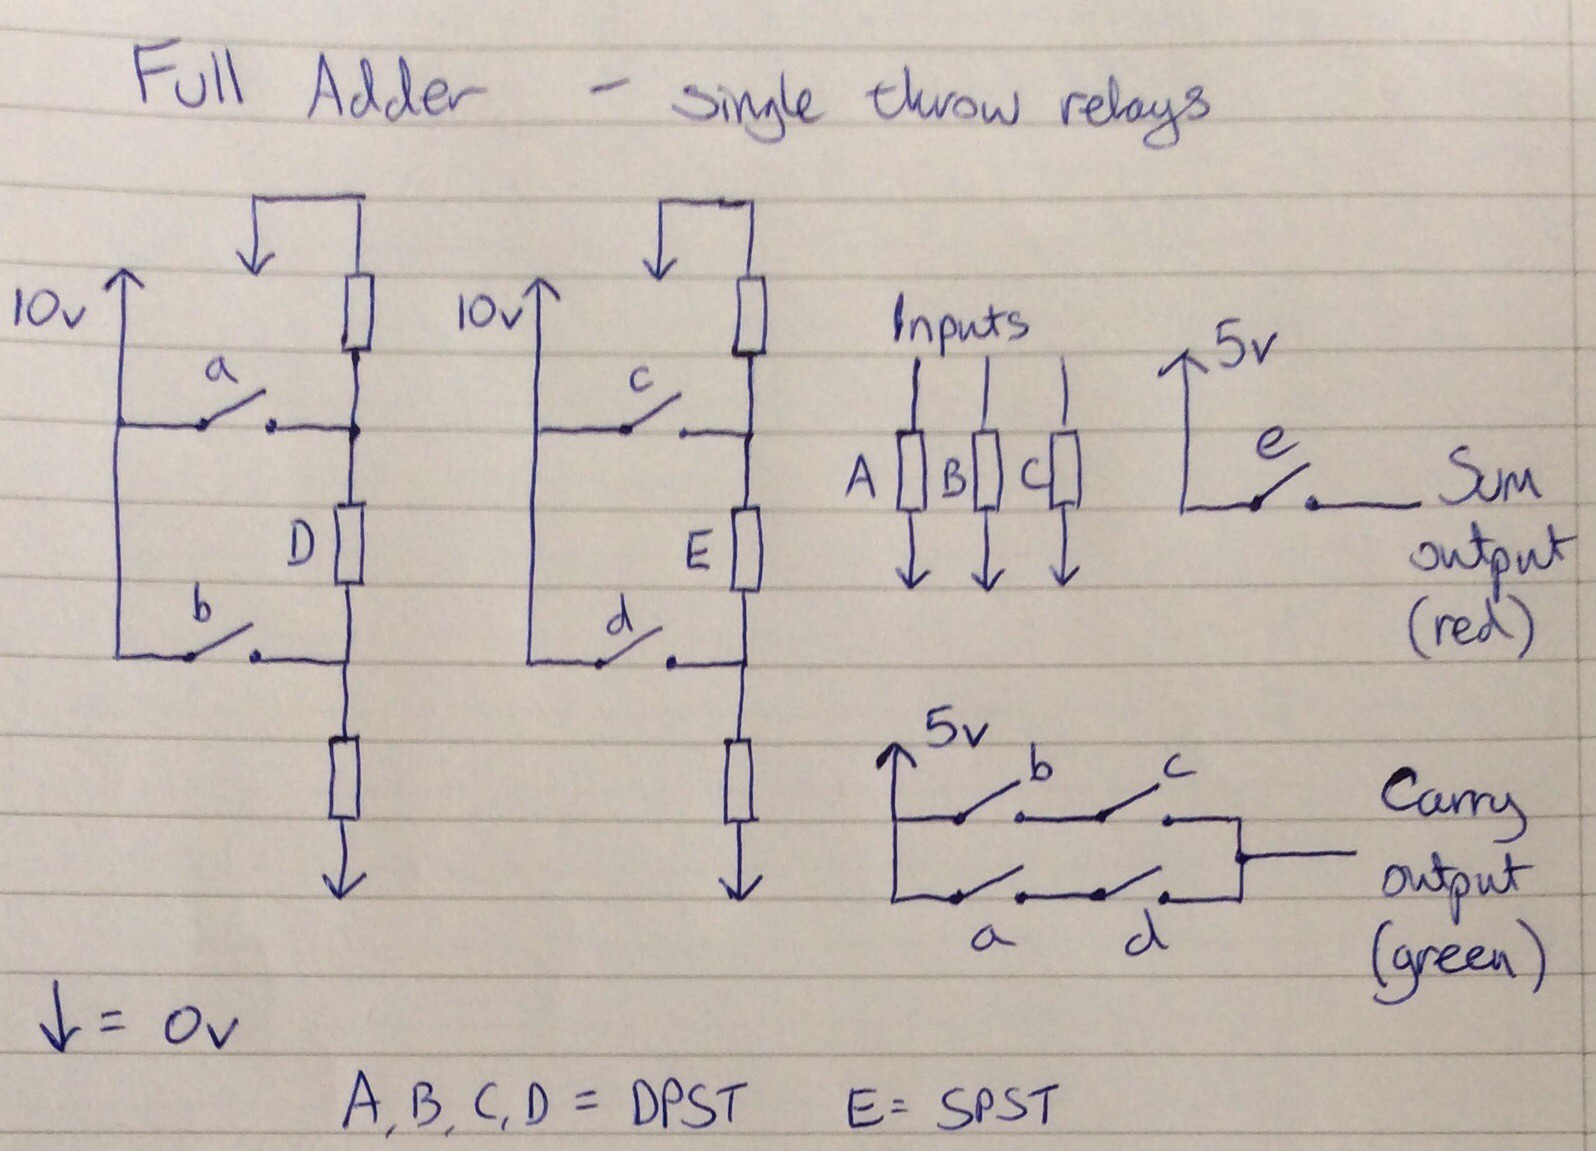 Full Adder Made From Reed Relays Details 4 Pin Relay Wiring Diagram The Rectangles Labelled With Upper Case Letters Represent Coils Corresponding Contacts Are Represented Using Lower